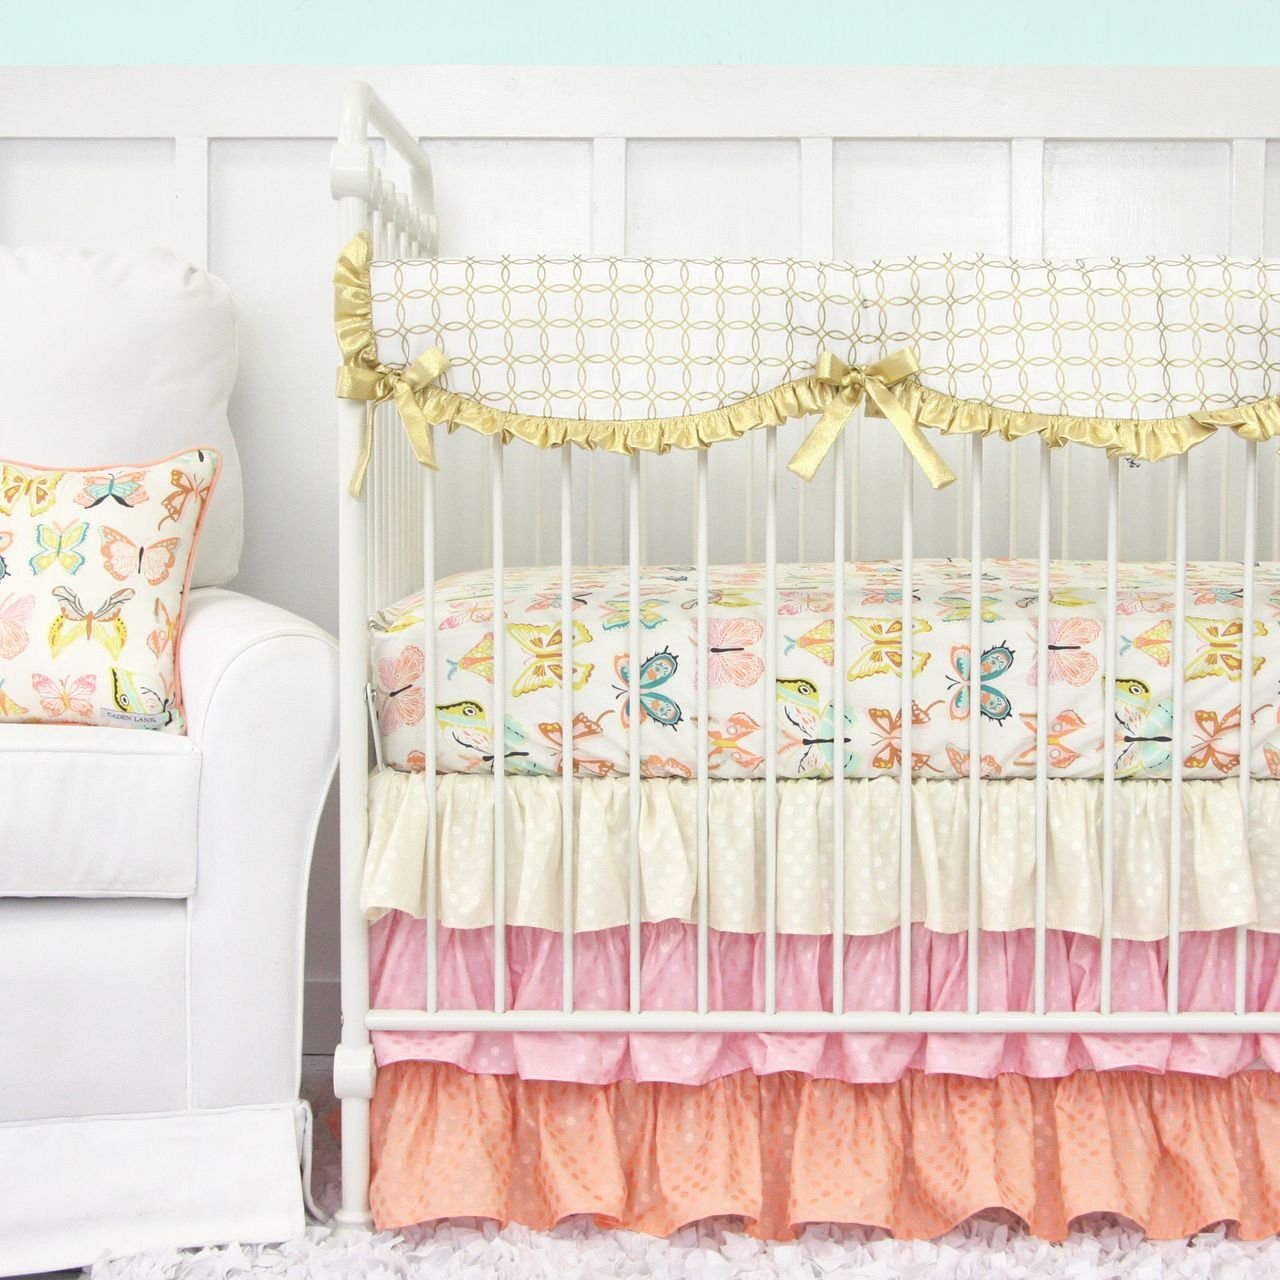 Pastel Nursery Bedding Sets: Bright Pastel Collection In Peach